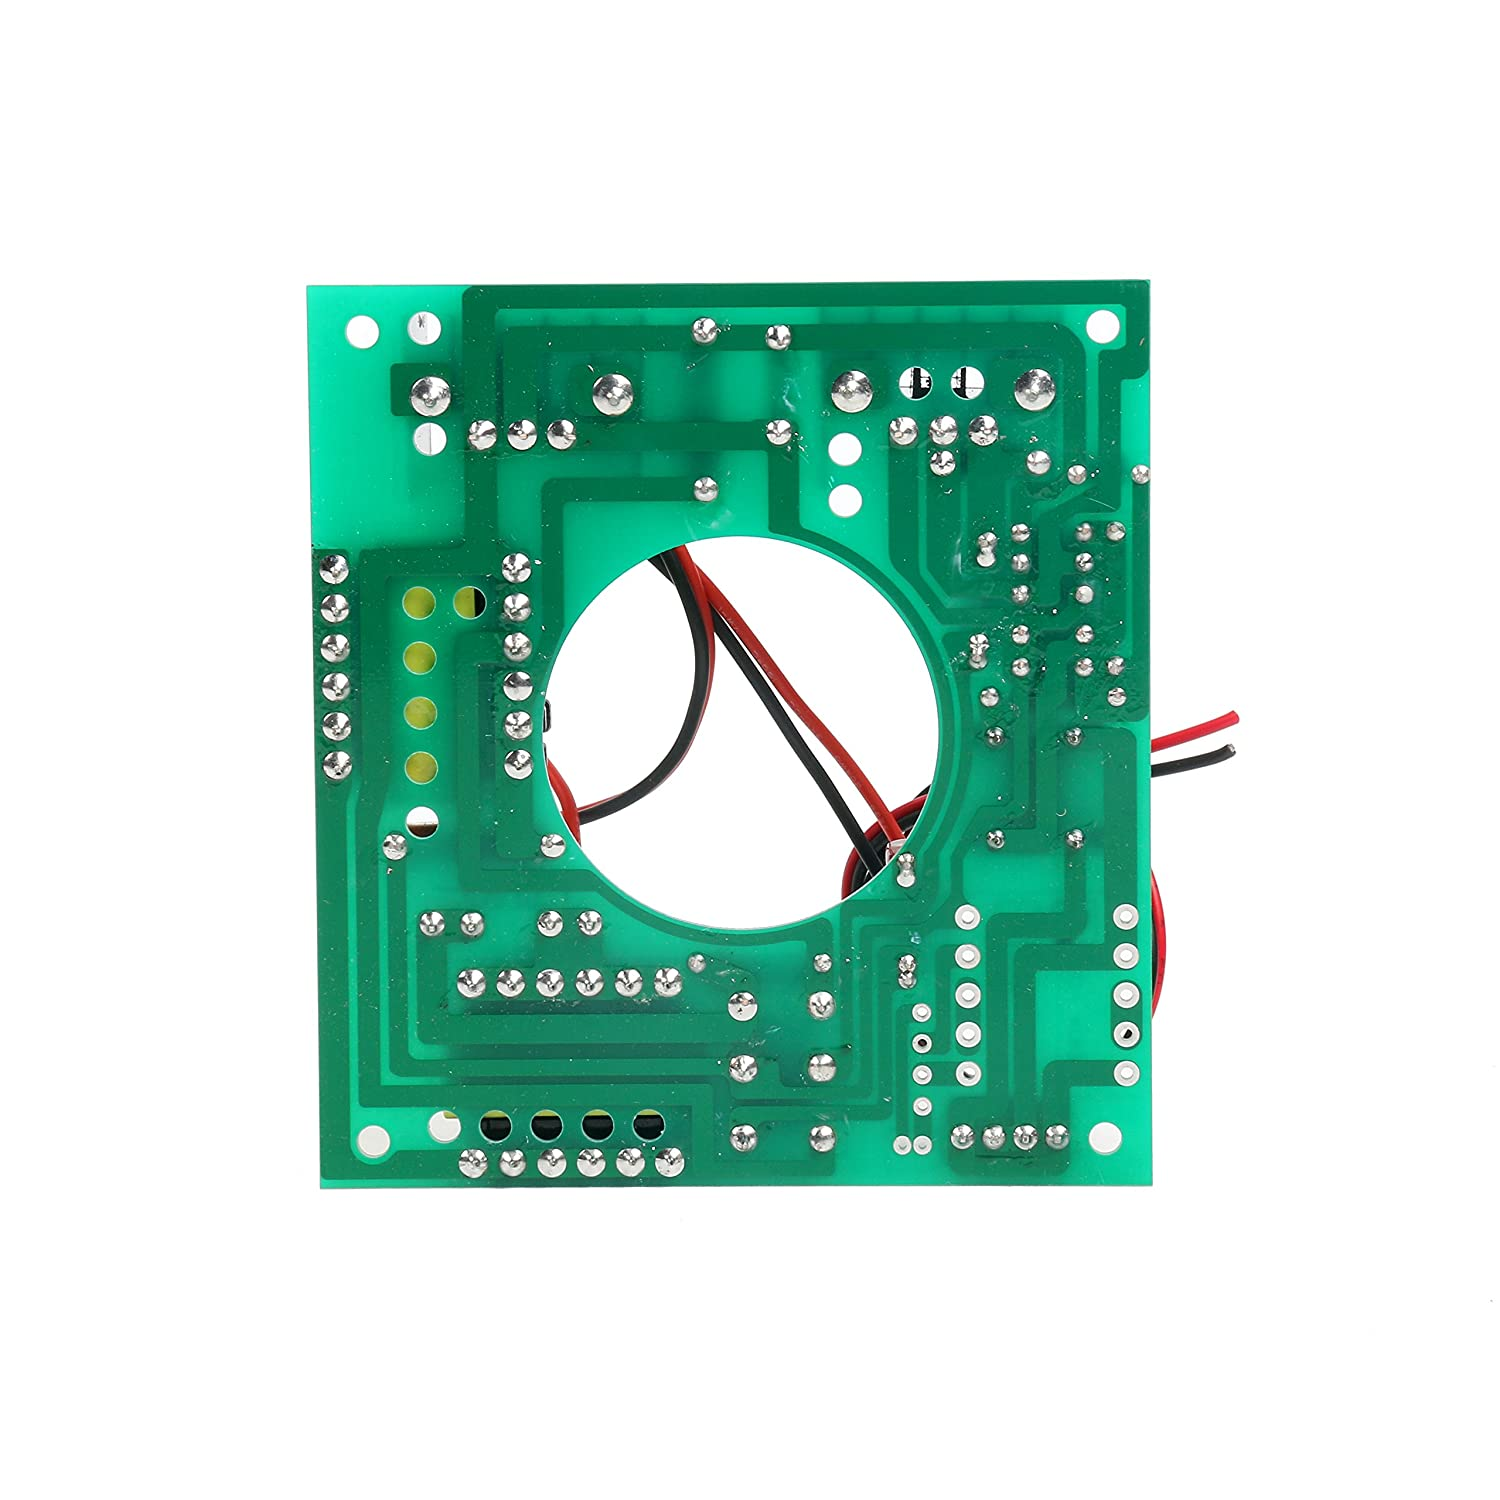 60w 40khz Ultrasonic Cleaning Transducer Cleaner Power Driver 50w 220v Generator Circuit Board 110v Ac Industrial Scientific